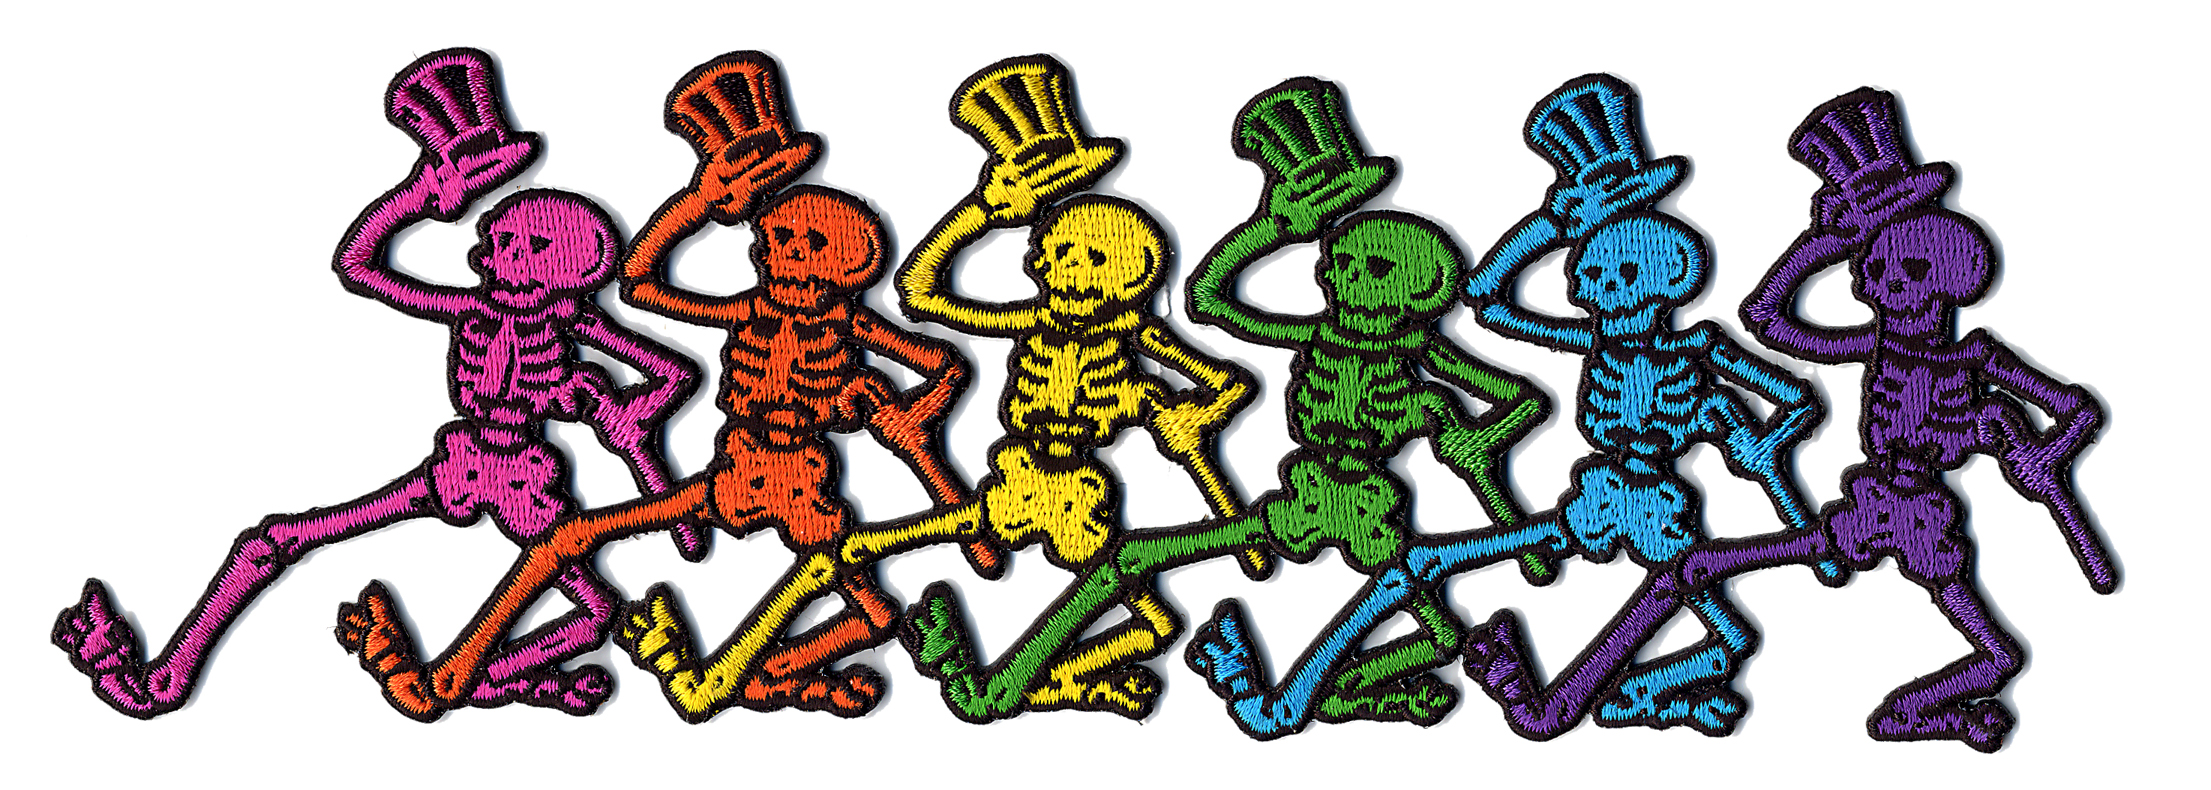 grateful dead xl rainbow skeletons in line patch gypsy rose